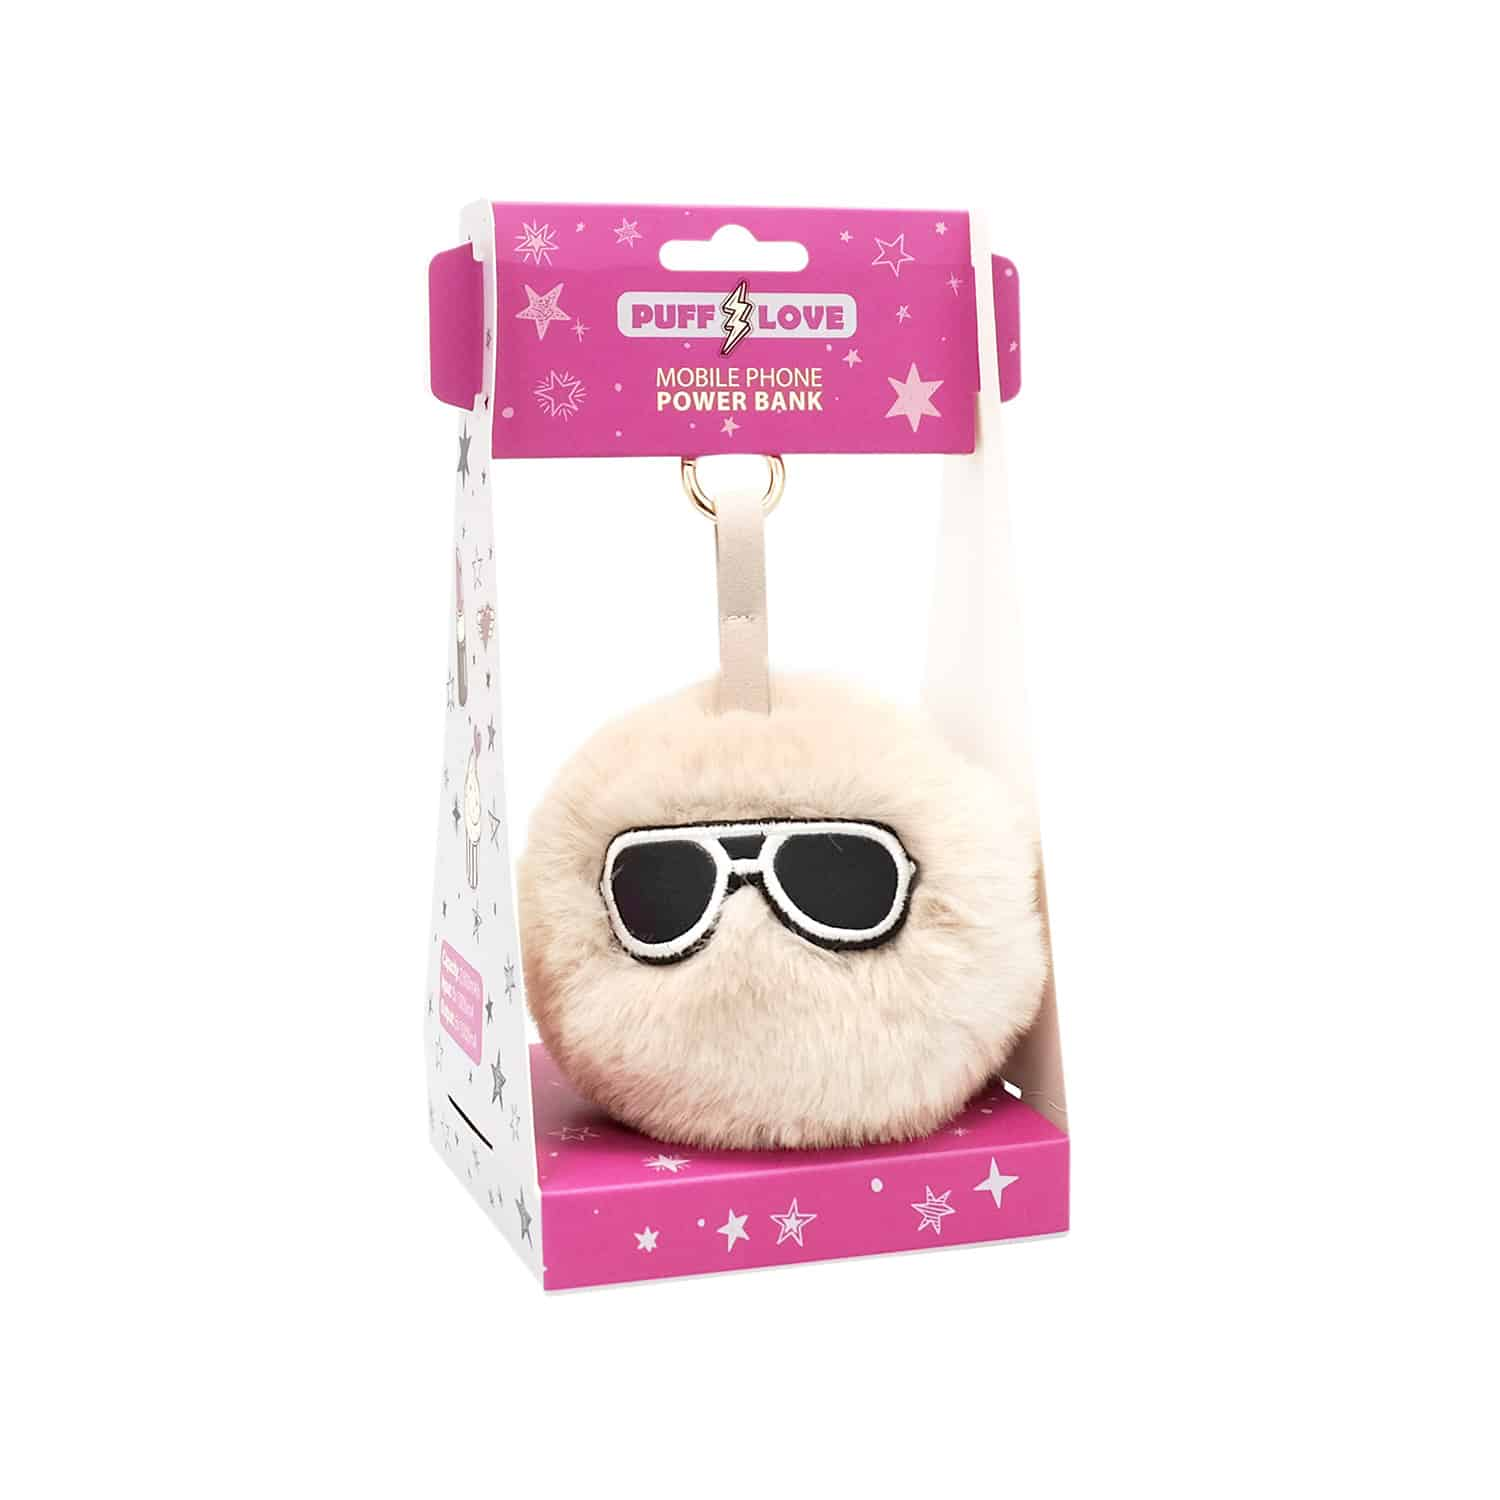 Portable Battery Puff Love Ponphone Sunglasses 619172